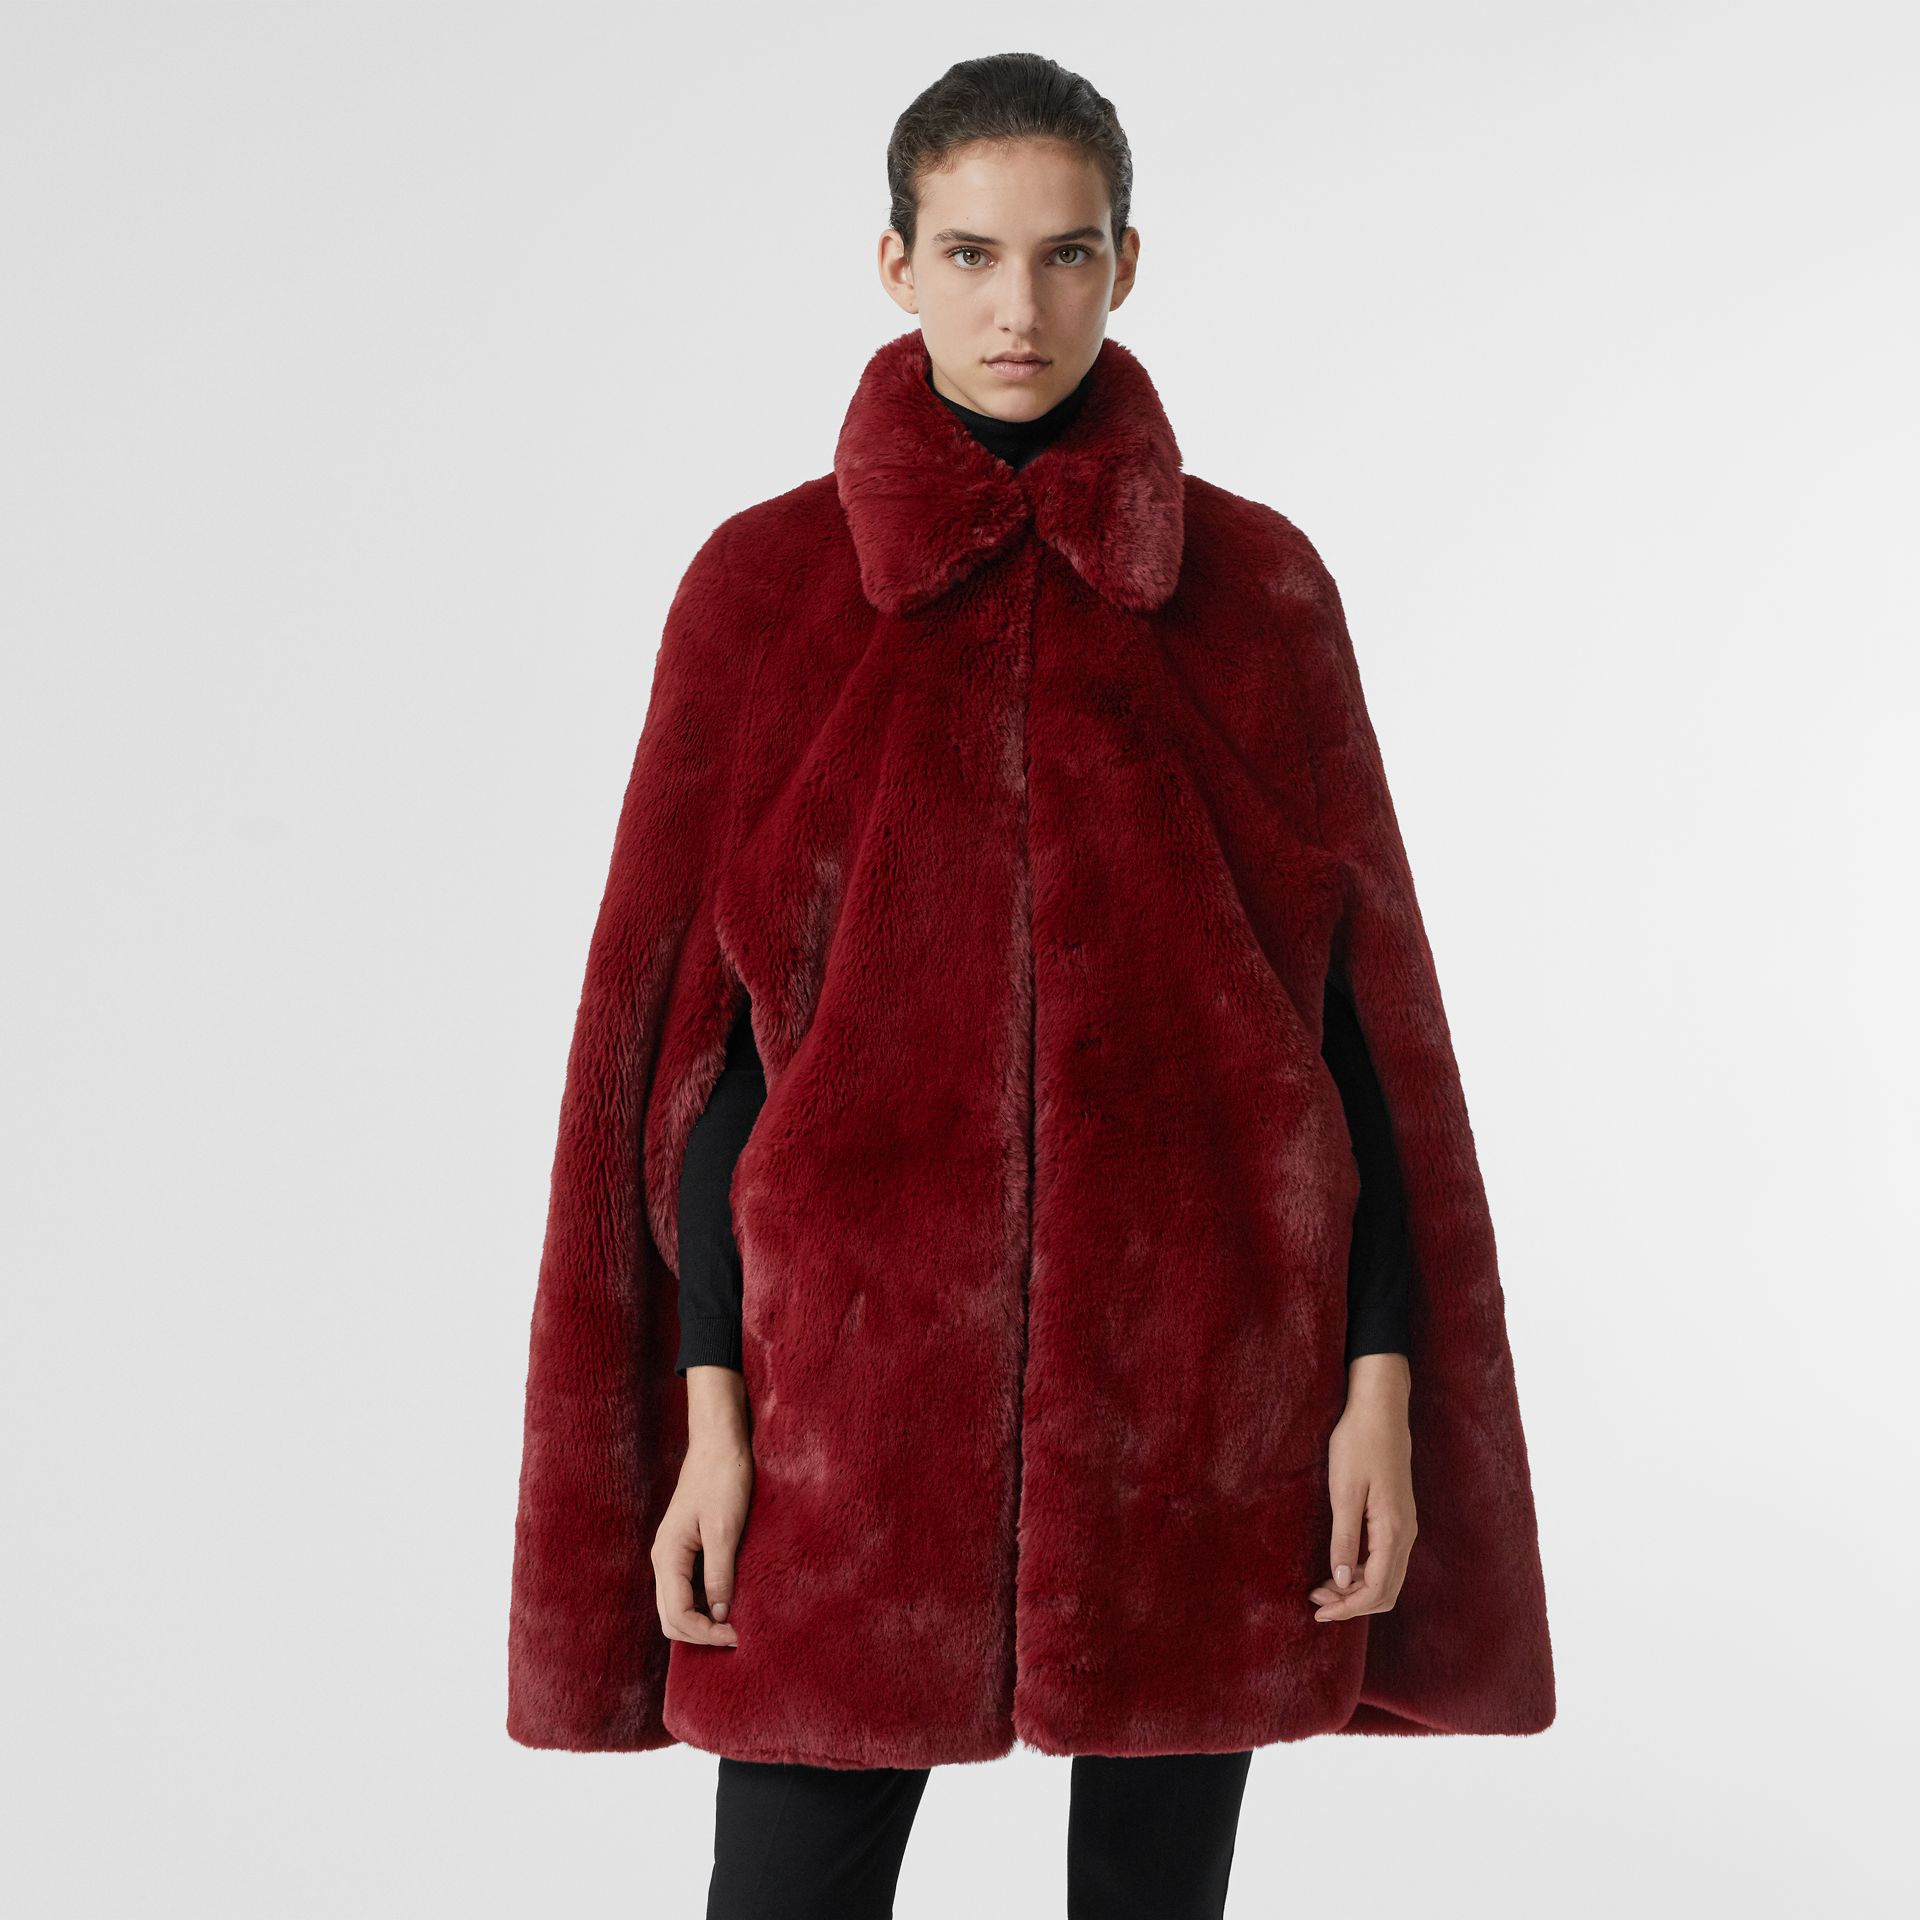 Faux Fur Cape in Burgundy - Women | Burberry United States - gallery image 4